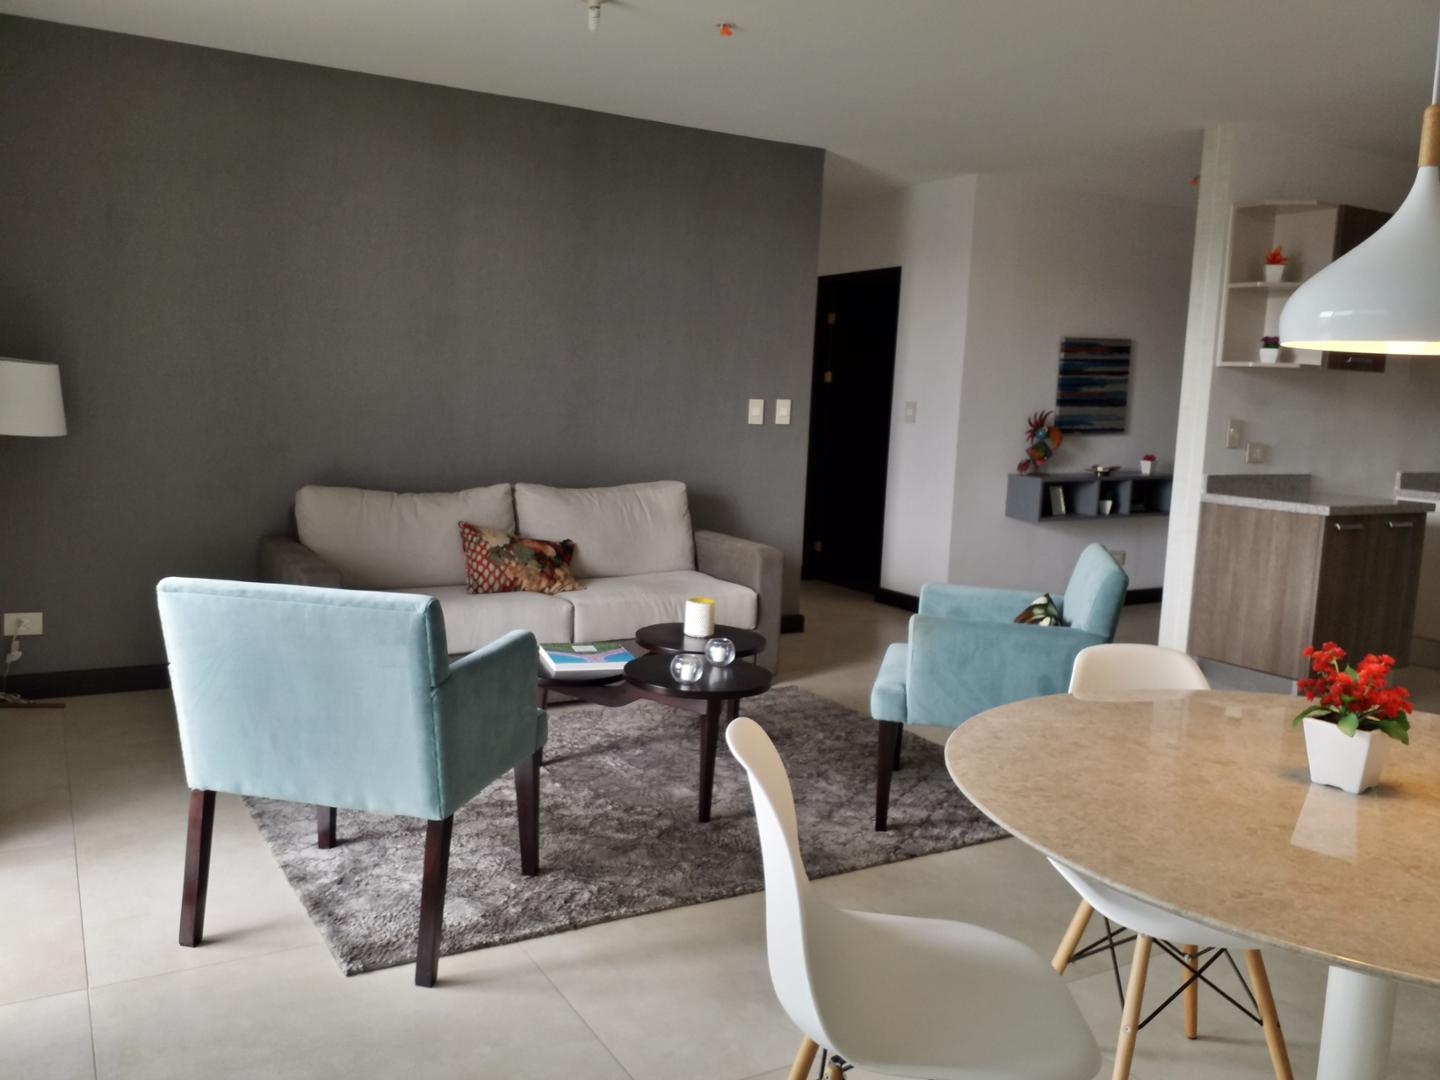 Apartamento en Venta en San Francisco De Heredia, San Francisco, Heredia